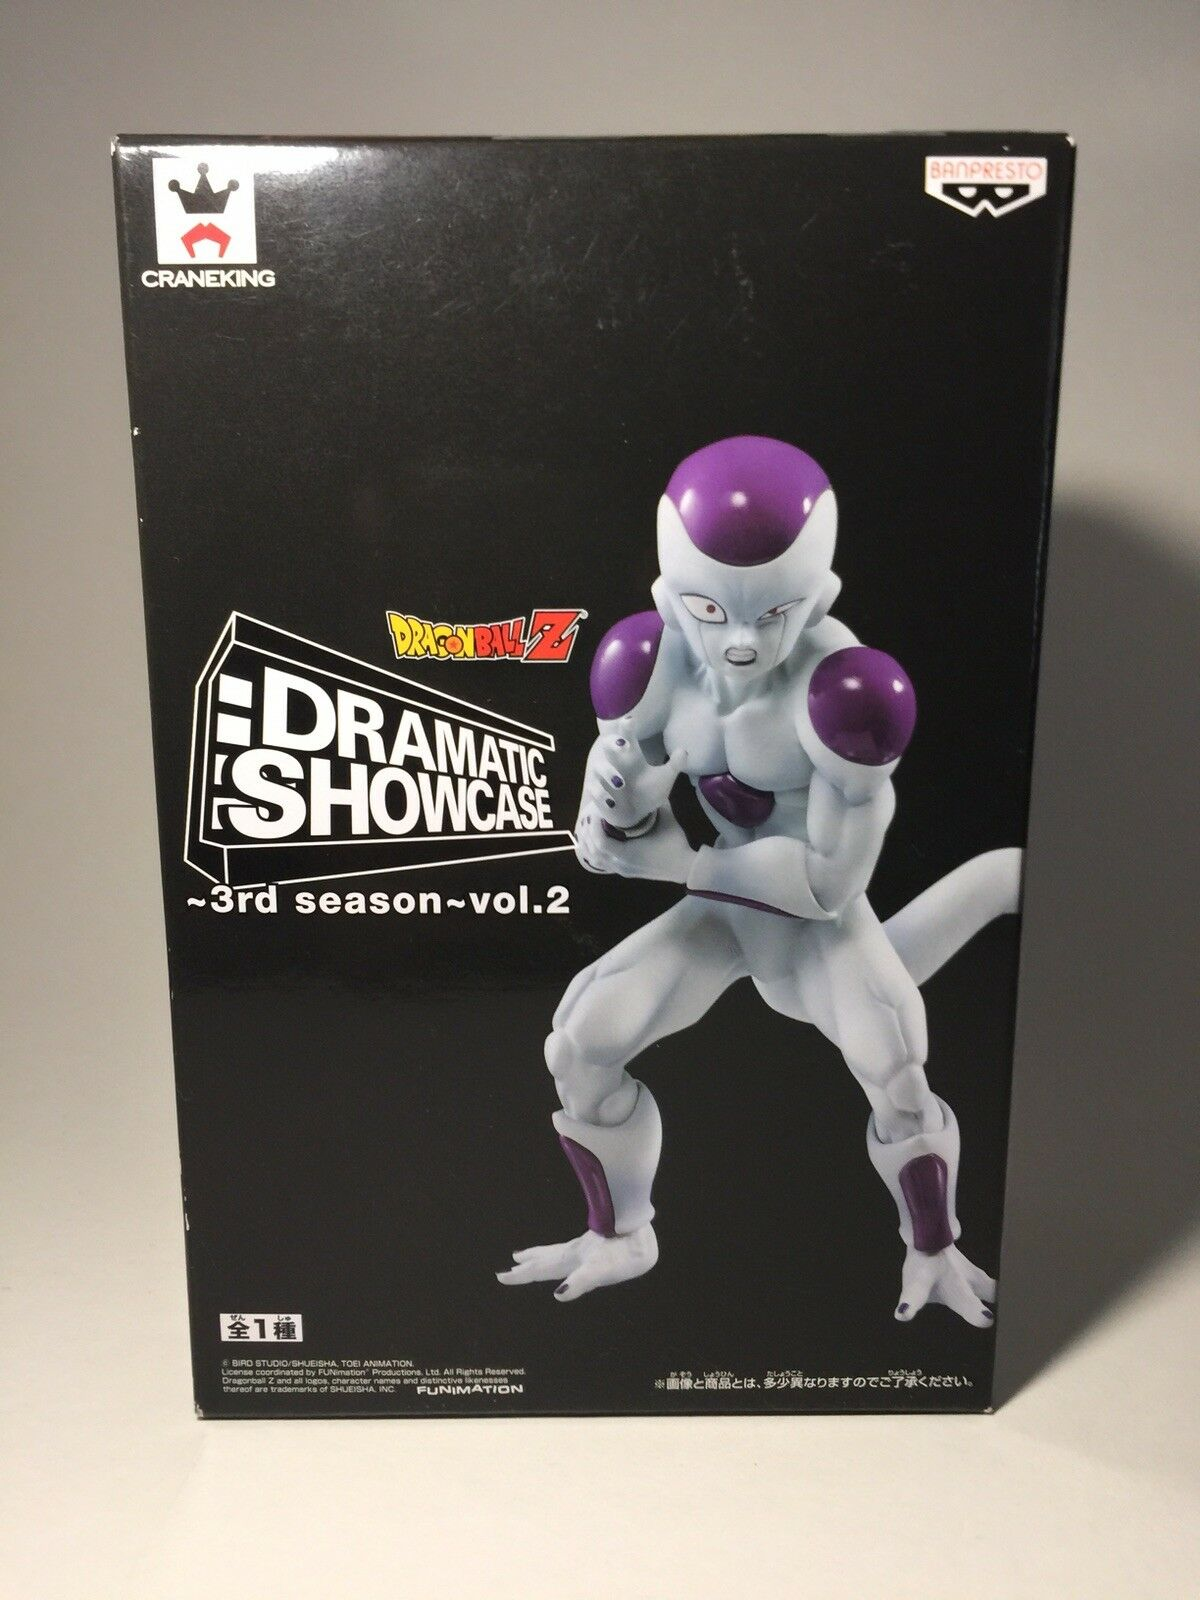 Dragon Ball Z Dramatic Showcase 3rd Season Vol 2 Final Form Frieza PVC Figure